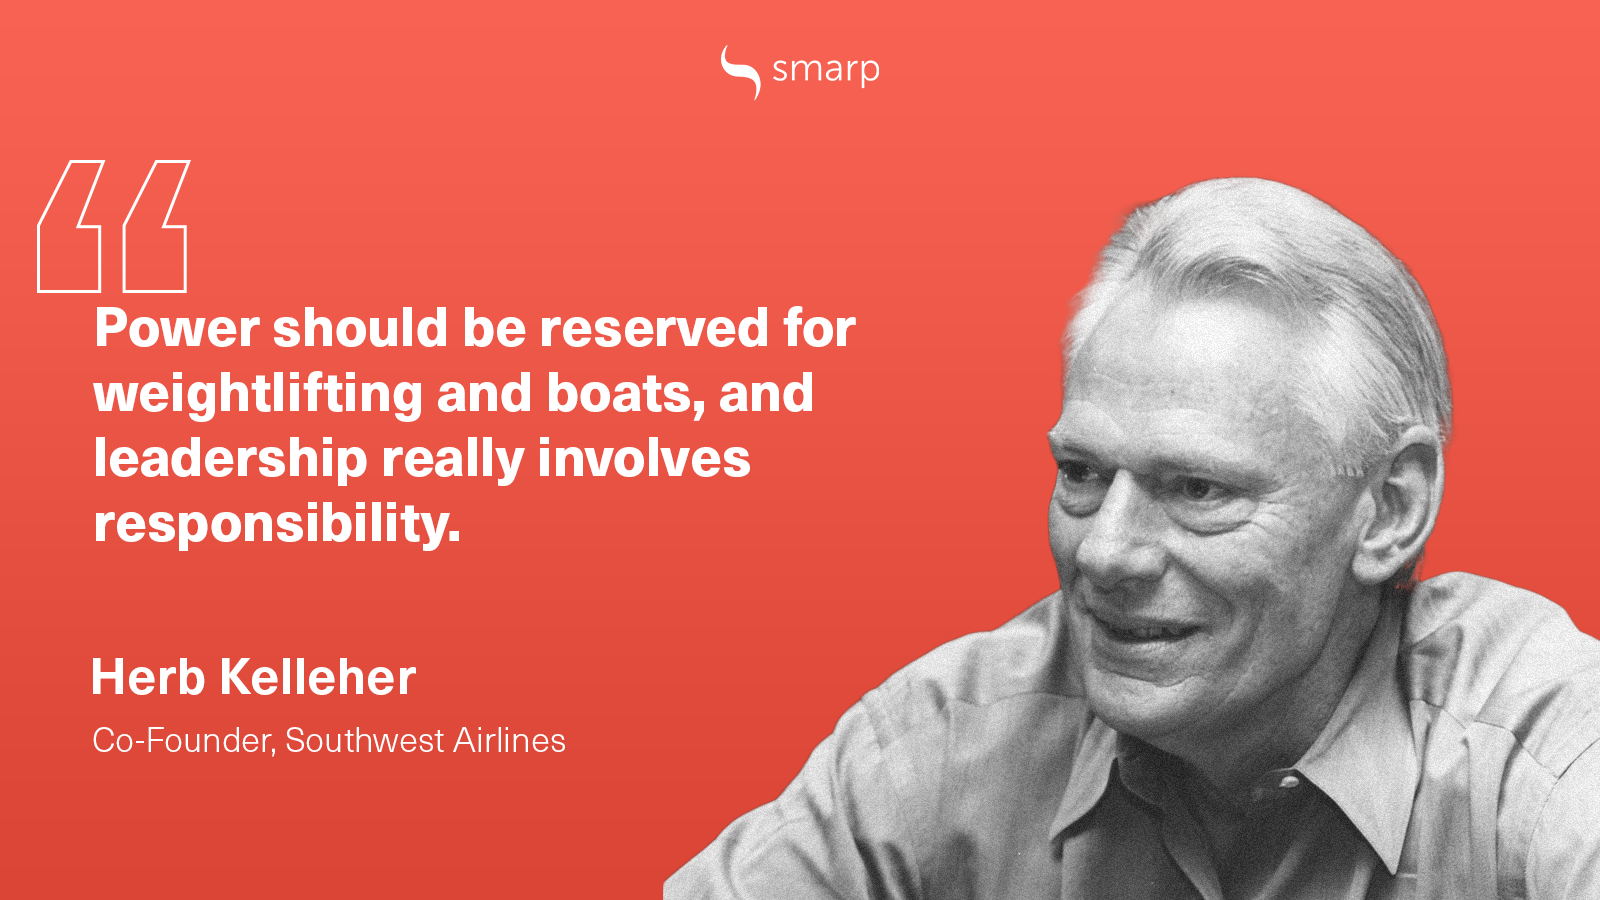 herb kelleher on what being a great leader means